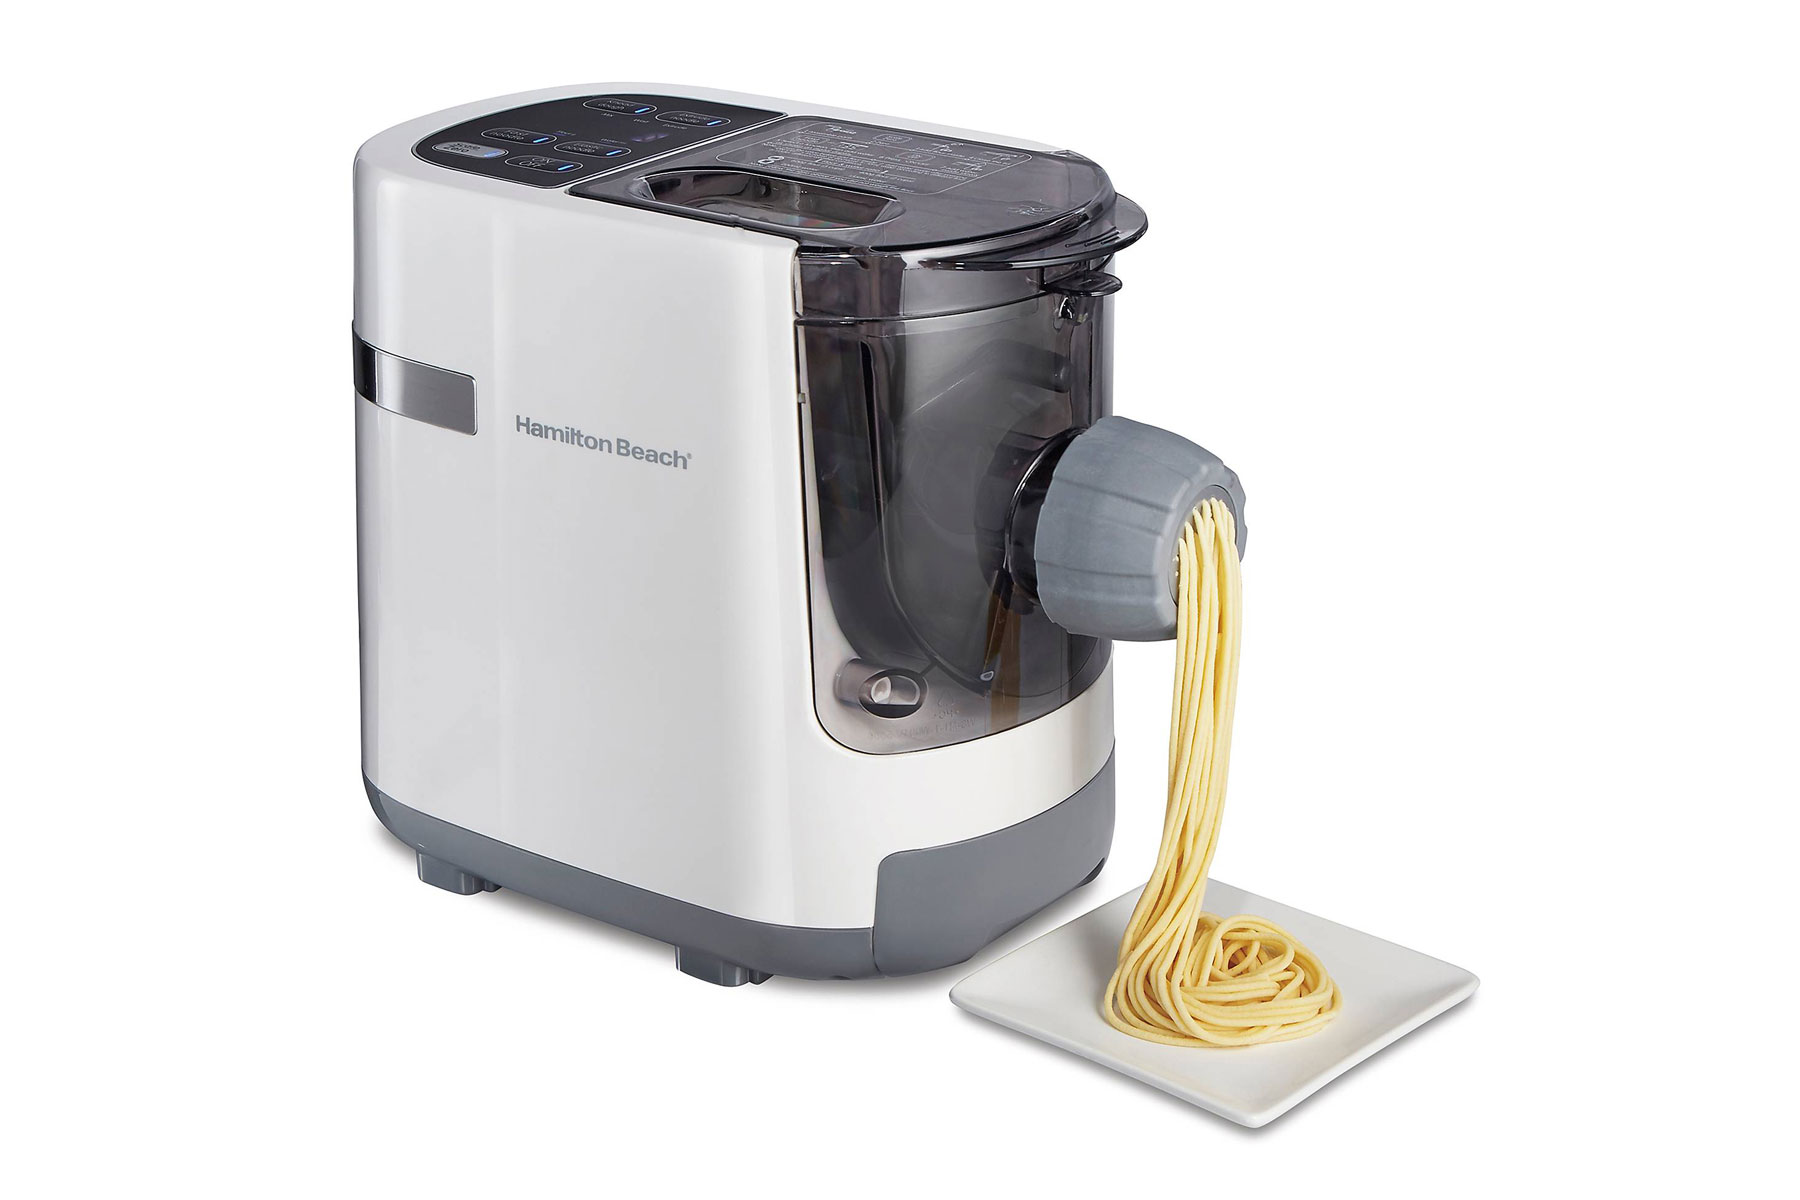 Silver electric pasta maker